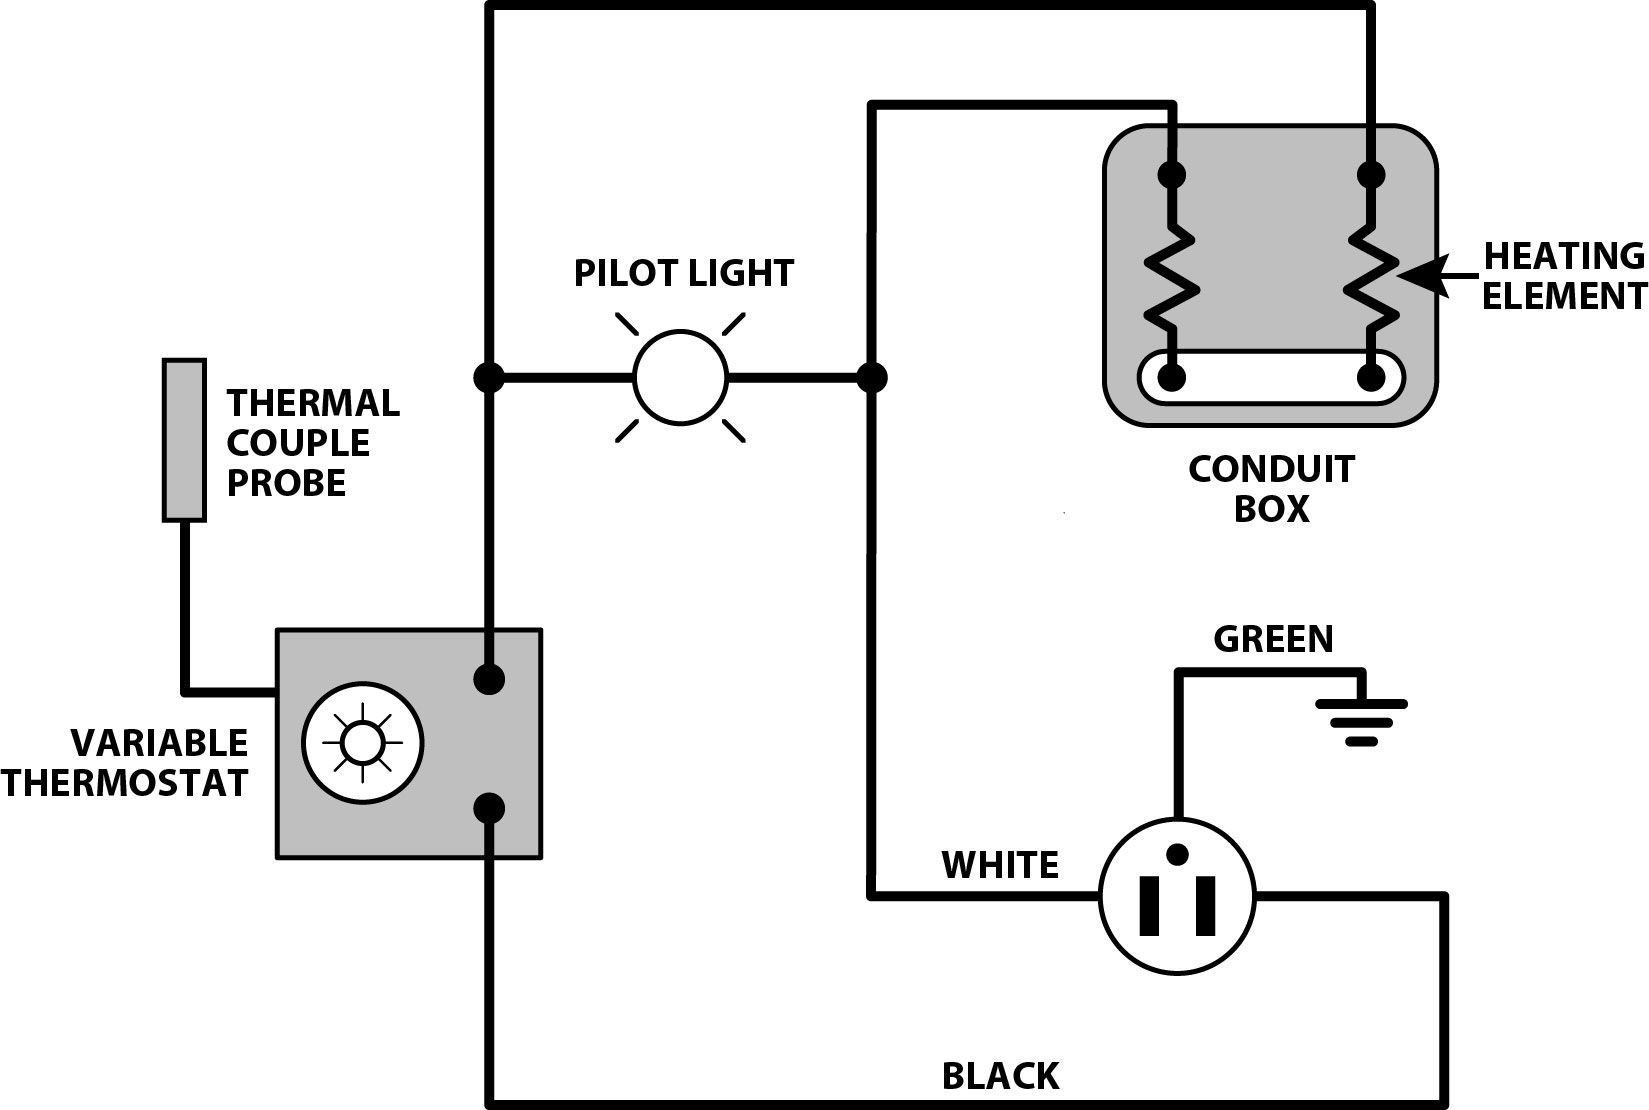 240v plug wiring diagram with Type 300 Bench Rod Ovens on Simple And Safe Solution To Control A Power Plug With Arduino Or Pc as well Patent Us7648389 Supply Side Backfeed Meter Socket Adapter Electrical Backfeed Diagram 15 in addition 3 Pin Plug Wiring Diagram Australia moreover Sae J1772 Schematic also Household Wiring Diagrams Single Phase.